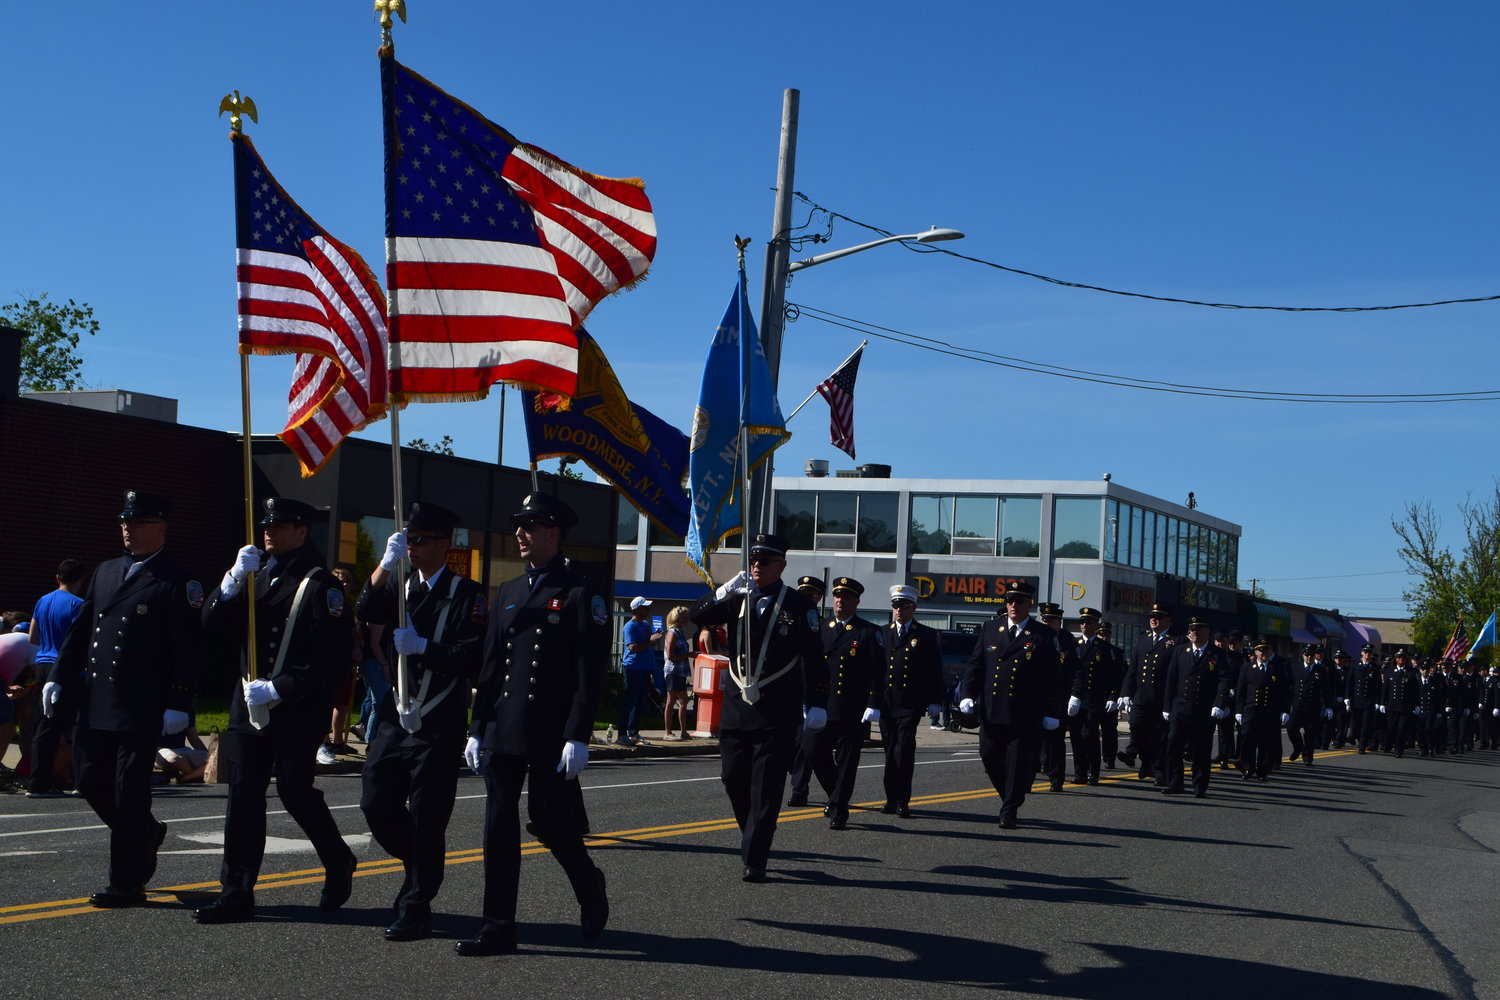 Hewlett and Woodmere firefighters took part in the parade.